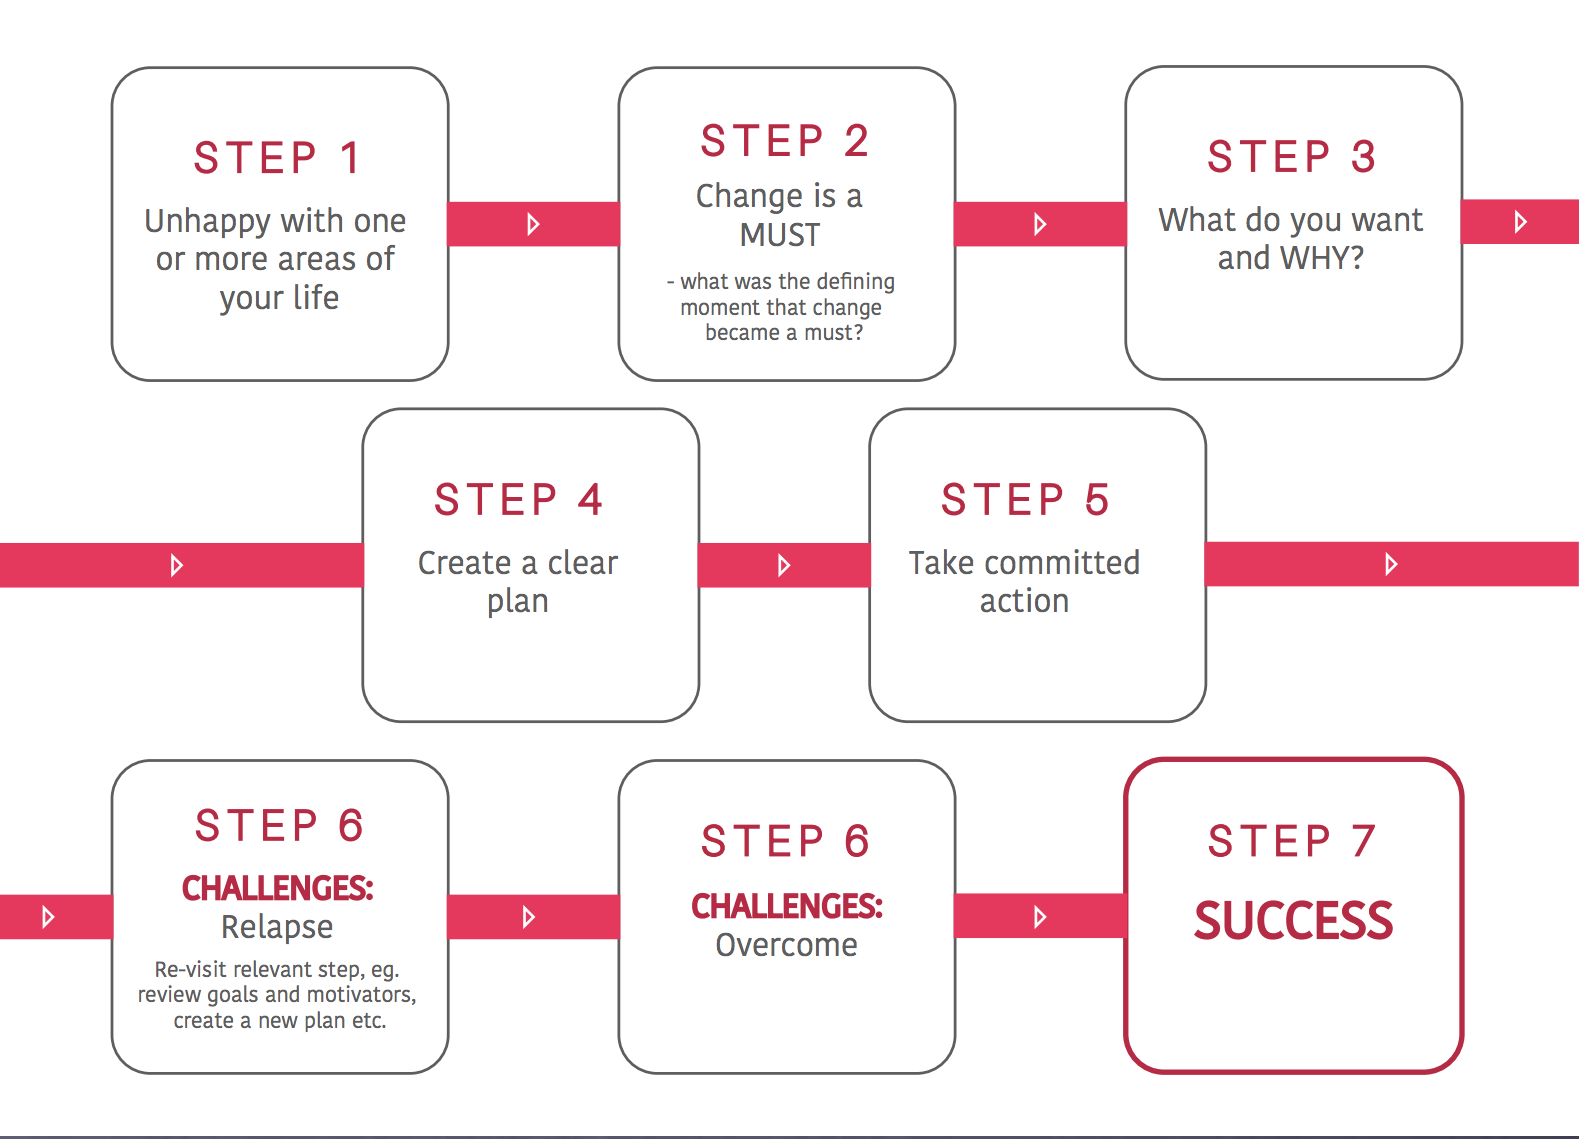 The HealthiLife Way 7 Step Process Of Change